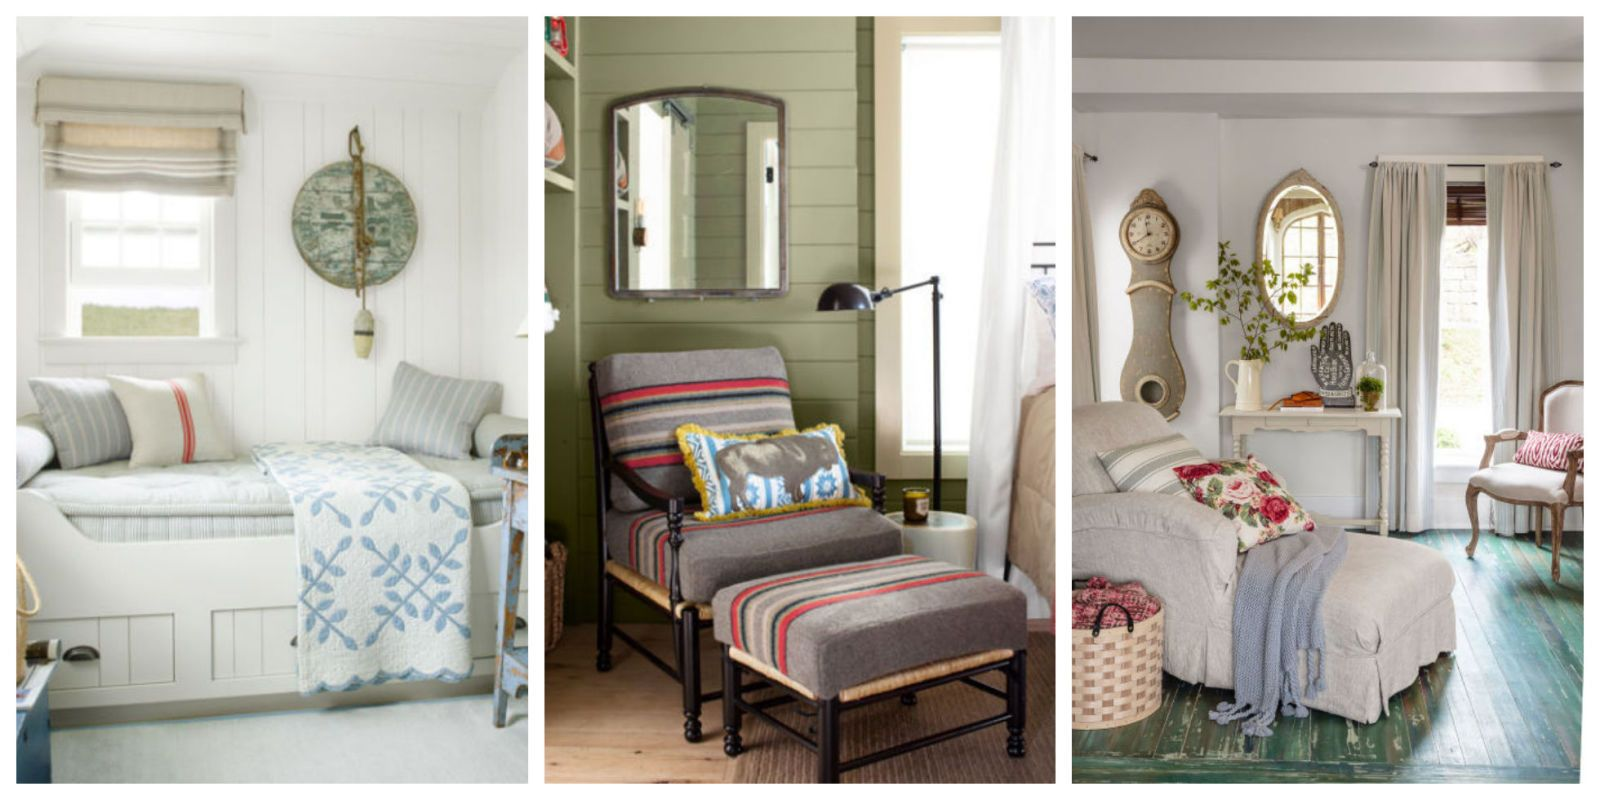 23 Relaxing and Cozy Reading Corners